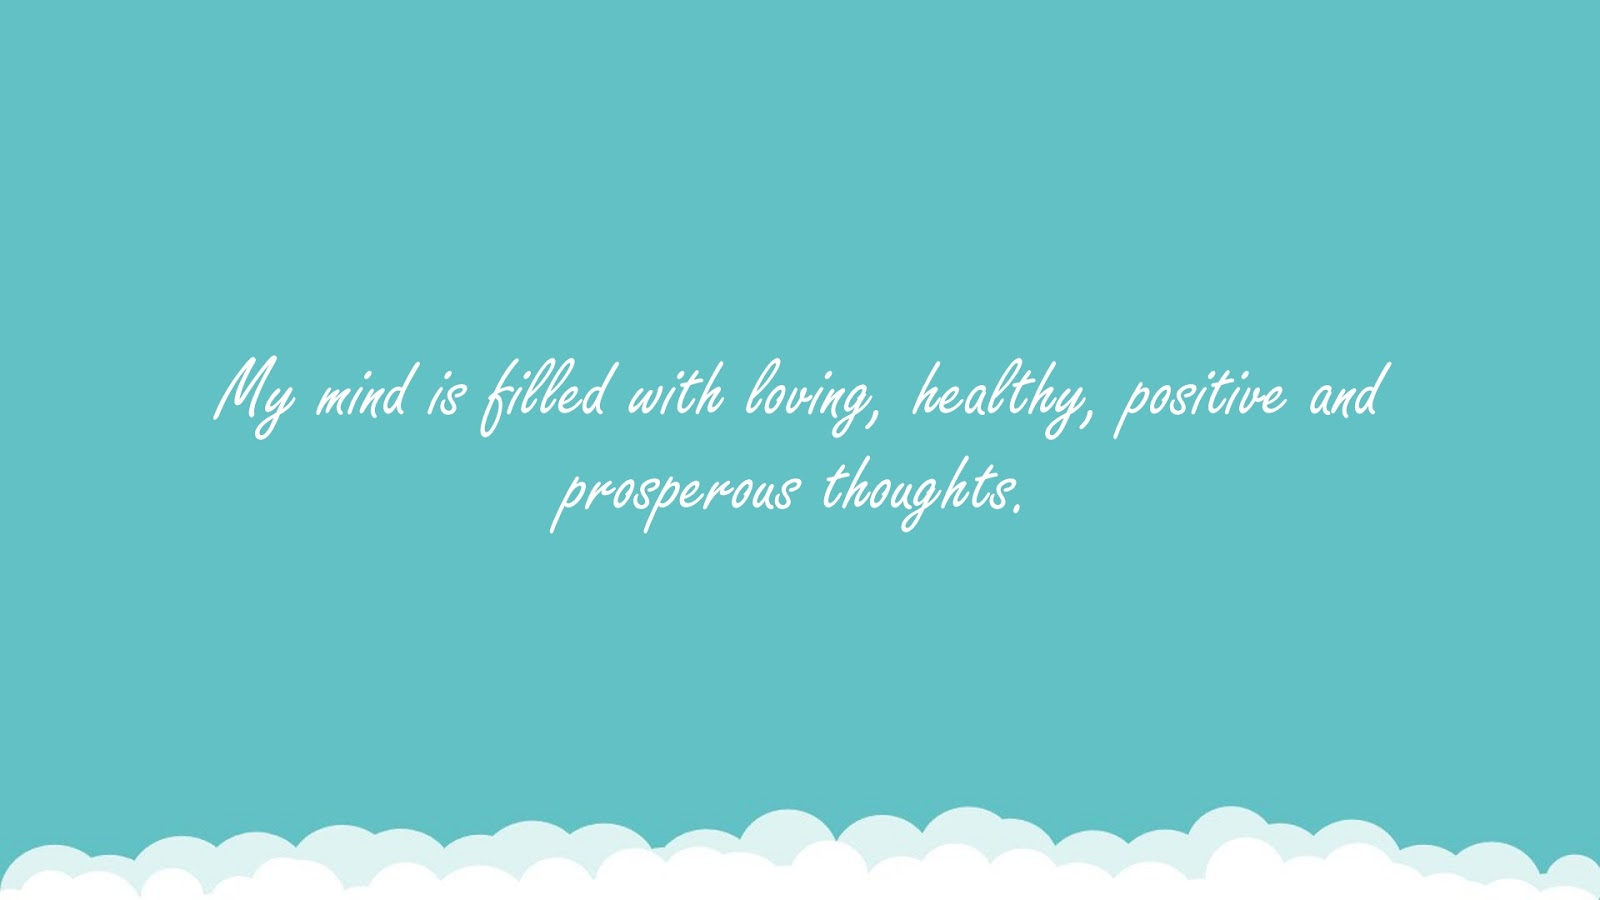 My mind is filled with loving, healthy, positive and prosperous thoughts.FALSE